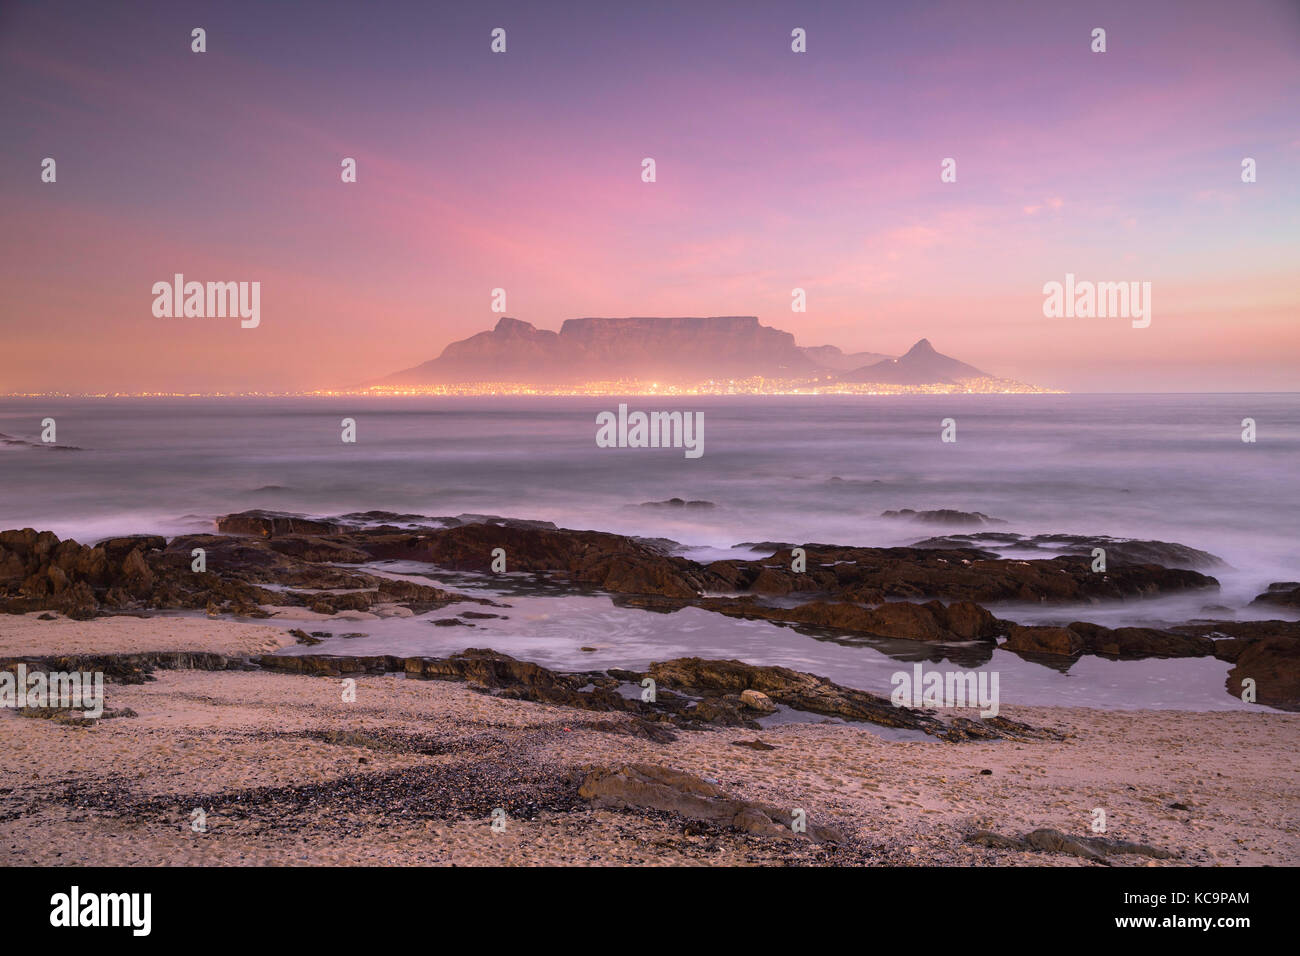 View of Table Mountain from Bloubergstrand at sunset, Cape Town, Western Cape, South Africa - Stock Image